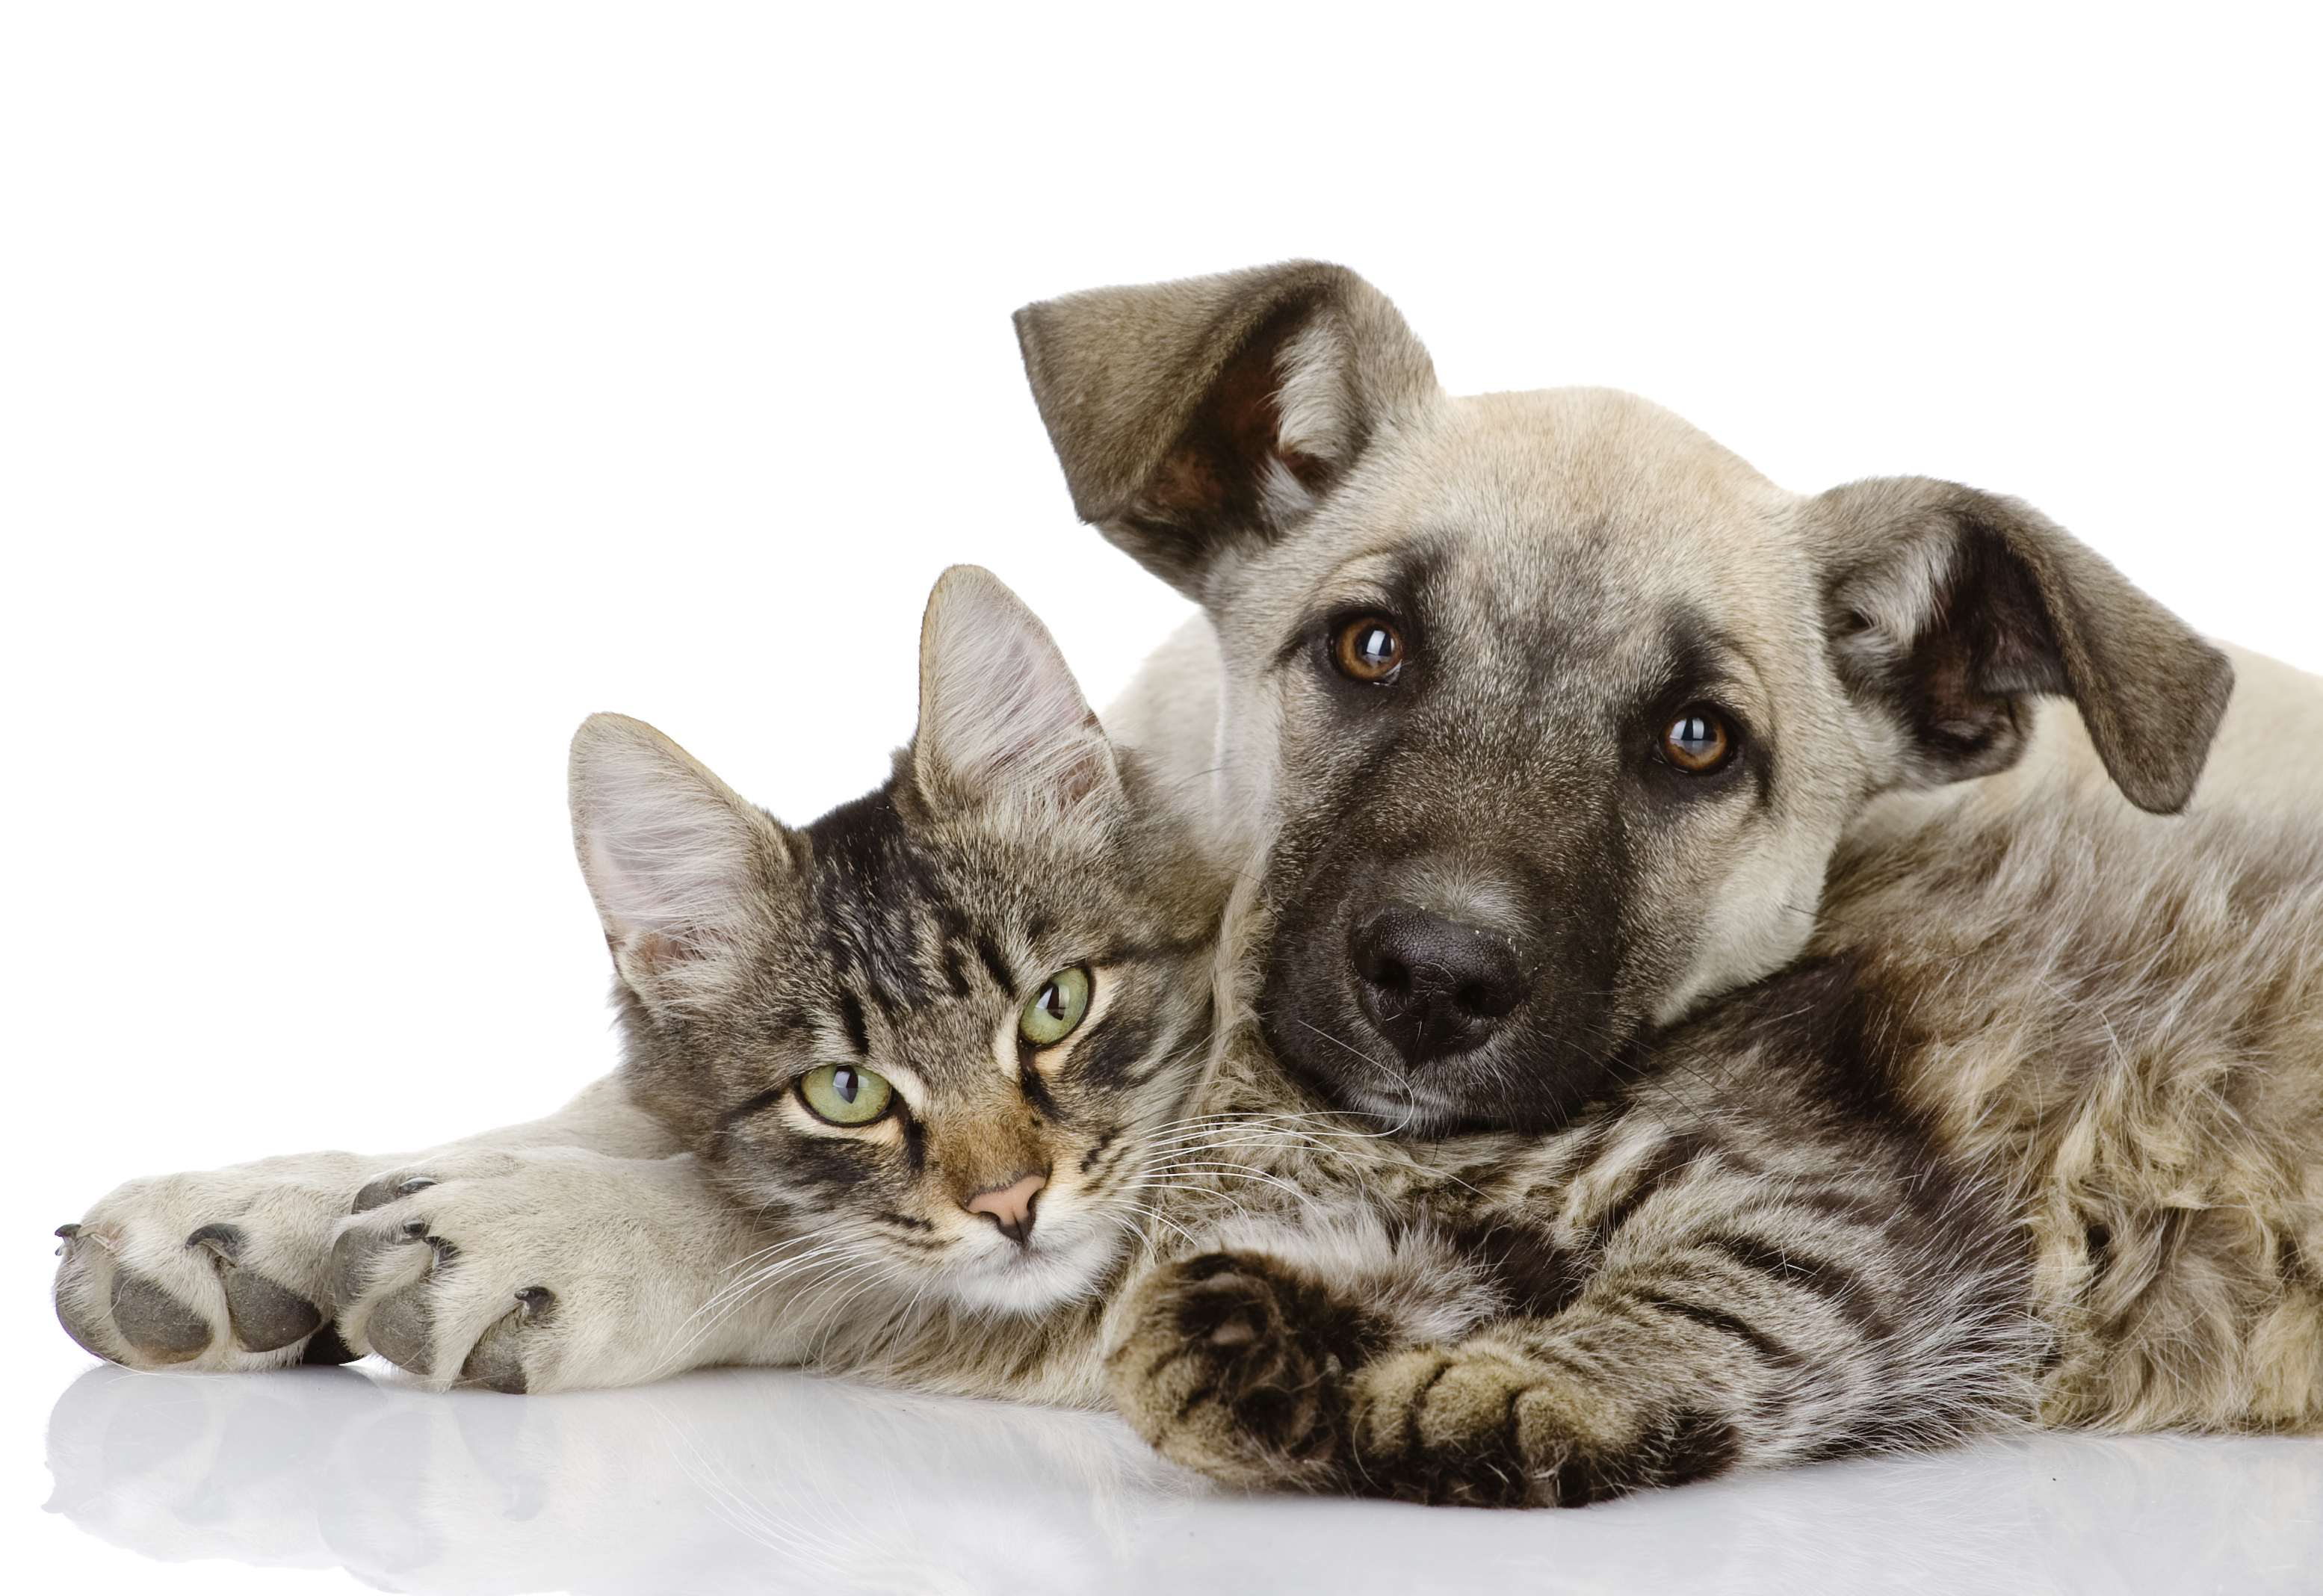 Disadvantages and Risks of Low-Cost Spay and Neuter pic